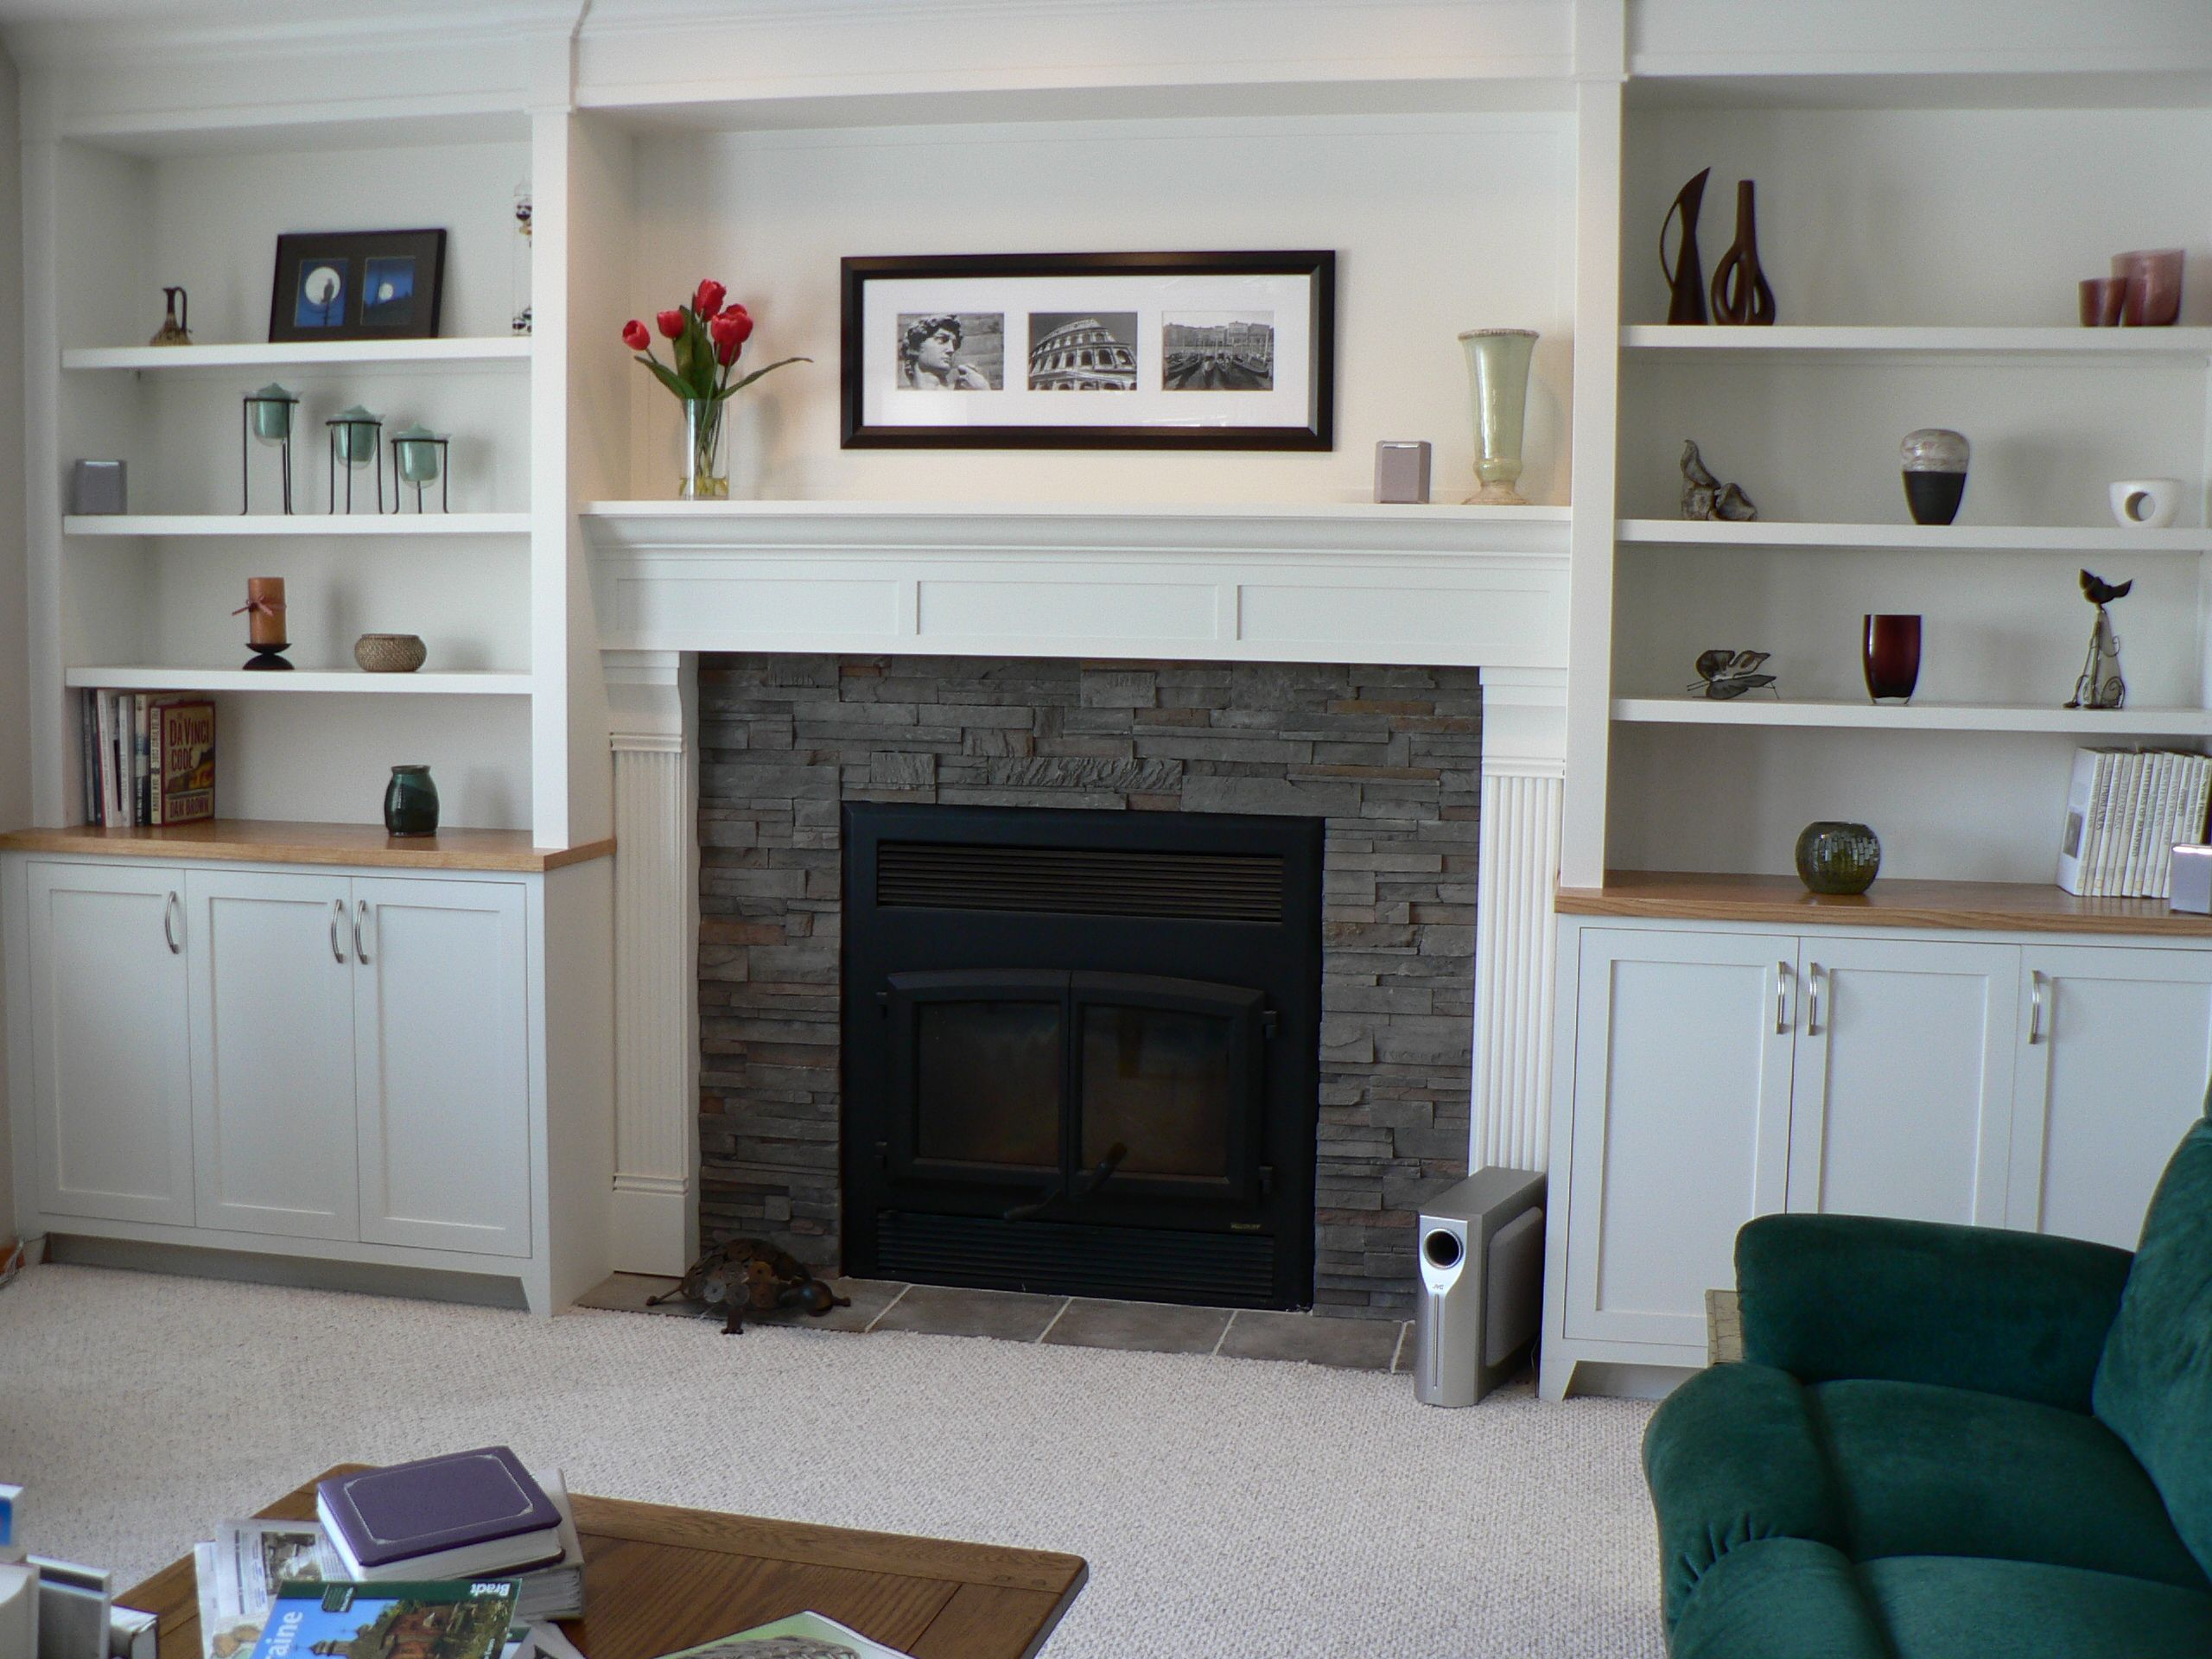 Fireplace Mantle And Surround With Cabinets/shelves